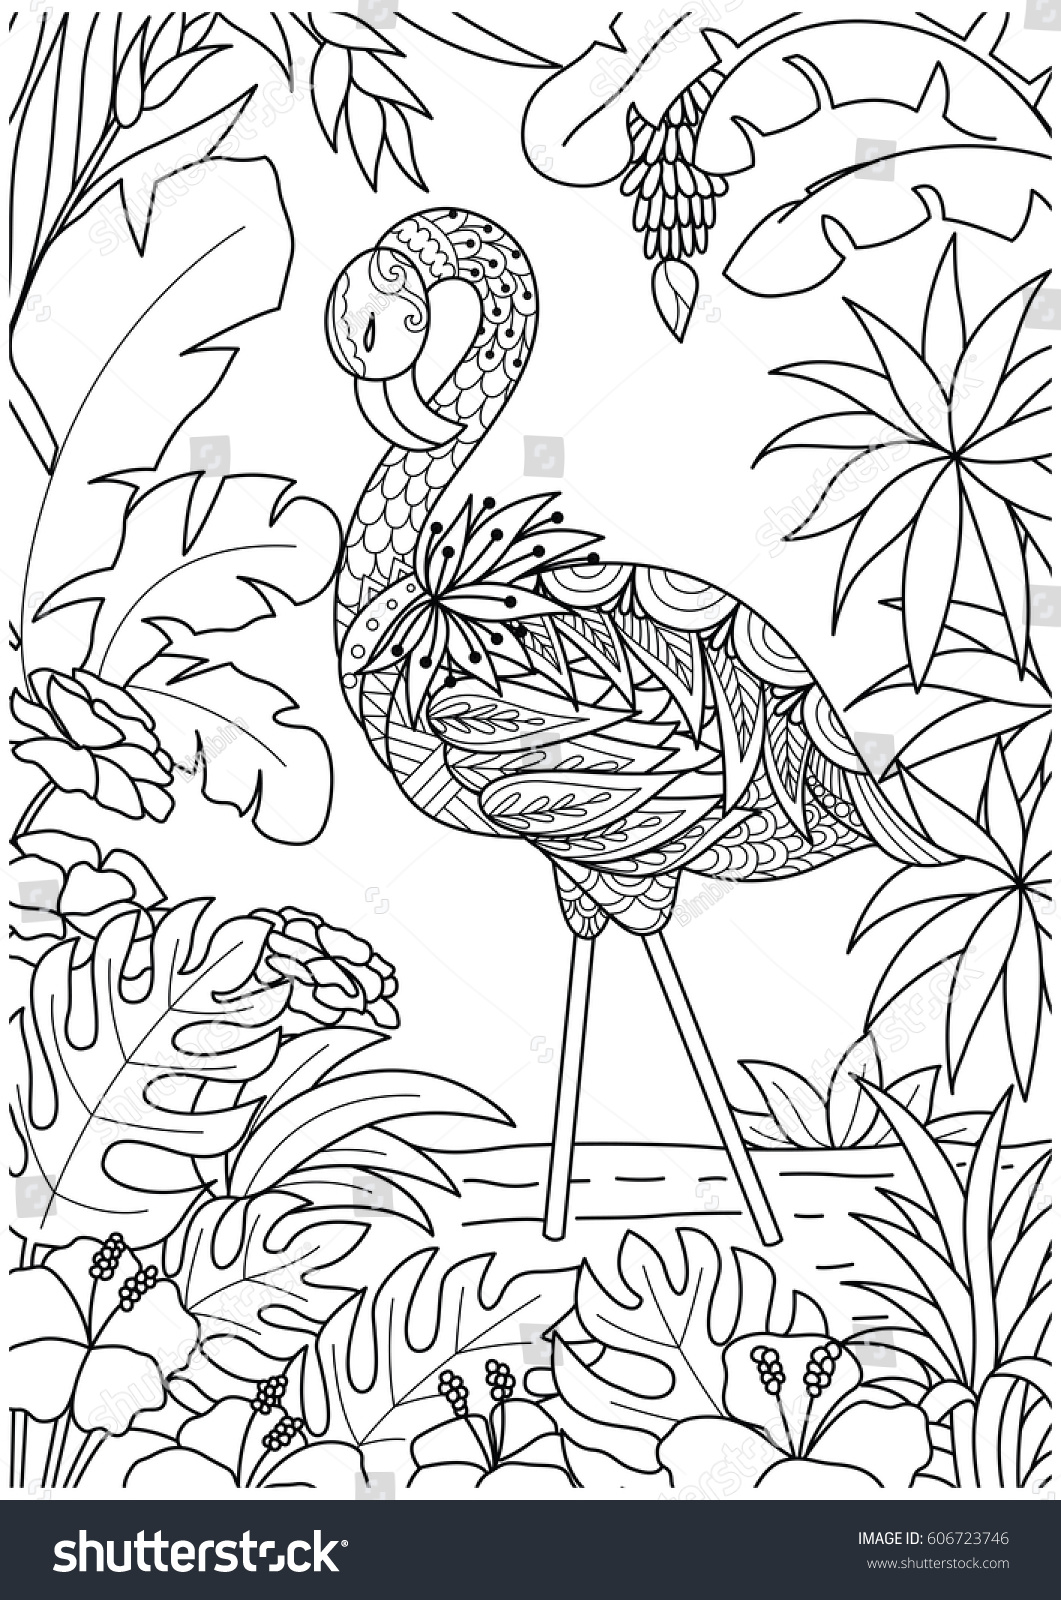 Coloring sheets for adults flamingo - Beautiful Flamingo In Summer Time For Coloring Book Page Book Cover And Other Design Element